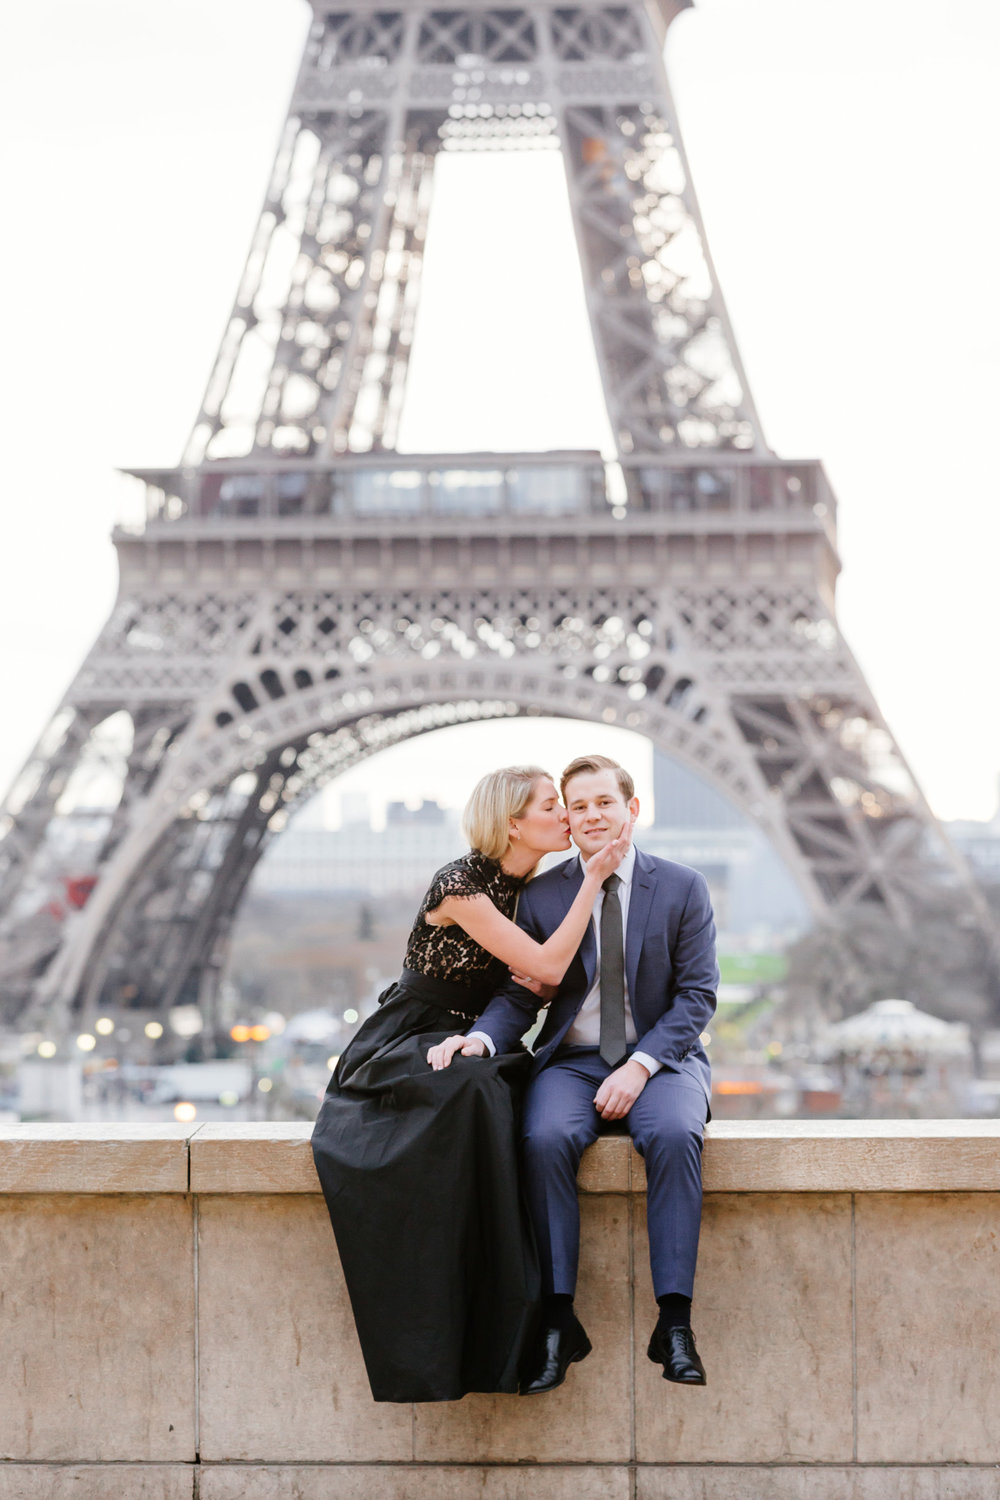 Paris vacation romantic couple portrait kissing at Trocadero with the view of Eiffel Tower captured by Paris Photographer Federico Guendel www.iheartparis.fr